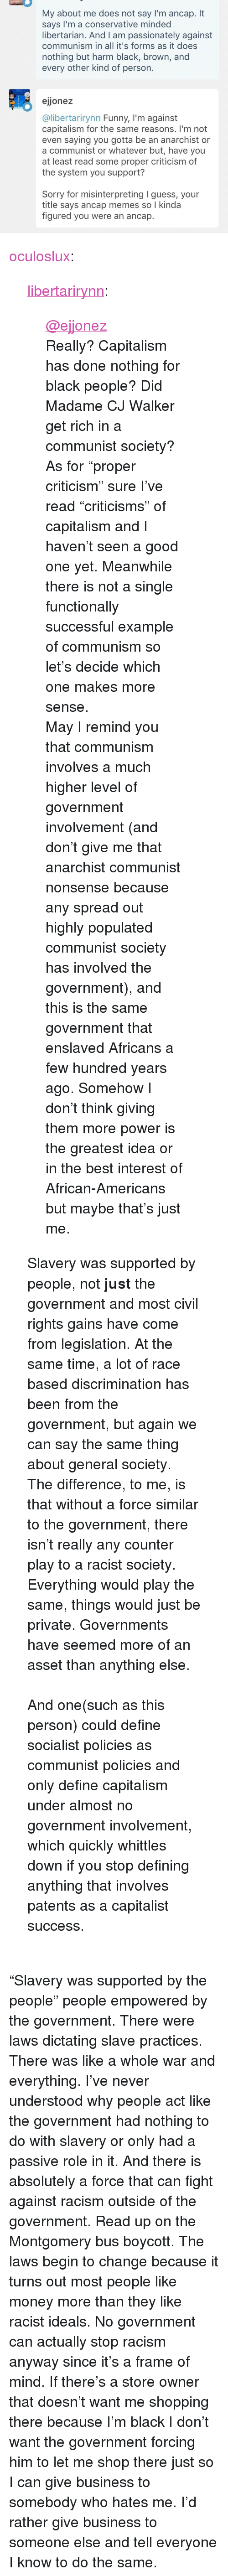 """Give Me That: My about me does not say I'm ancap. It  says I'm a conservative minded  libertarian. And I am passionately against  communism in all it's forms as it does  nothing but harm black, brown, and  every other kind of person.  ejjonez  @libertarirynn Funny, I'm against  capitalism for the same reasons. I'm not  even saying you gotta be an anarchist or  a communist or whatever but, have you  at least read some proper criticism of  the system you support?  Sorry for misinterpreting I guess, your  title says ancap memes so I kinda  figured you were an ancap. <p><a href=""""http://oculoslux.tumblr.com/post/165487176622/libertarirynn-ejjonez-really-capitalism-has"""" class=""""tumblr_blog"""">oculoslux</a>:</p><blockquote> <p><a href=""""https://libertarirynn.tumblr.com/post/165486646224/ejjonez-really-capitalism-has-done-nothing-for"""" class=""""tumblr_blog"""">libertarirynn</a>:</p> <blockquote> <p><a href=""""https://tmblr.co/mLkBNqmONa48nW7sdNBIqQg"""">@ejjonez</a><br/> Really? Capitalism has done nothing for black people? Did Madame CJ Walker get rich in a communist society? As for """"proper criticism"""" sure I've read """"criticisms"""" of capitalism and I haven't seen a good one yet. Meanwhile there is not a single functionally successful example of communism so let's decide which one makes more sense.</p> May I remind you that communism involves a much higher level of government involvement (and don't give me that anarchist communist nonsense because any spread out highly populated communist society has involved the government), and this is the same government that enslaved Africans a few hundred years ago. Somehow I don't think giving them more power is the greatest idea or in the best interest of African-Americans but maybe that's just me.</blockquote> <p>Slavery was supported by people, not<b> just</b> the government and most civil rights gains have come from legislation. At the same time, a lot of race baseddiscrimination has been from the government, but again we can say the same thing ab"""